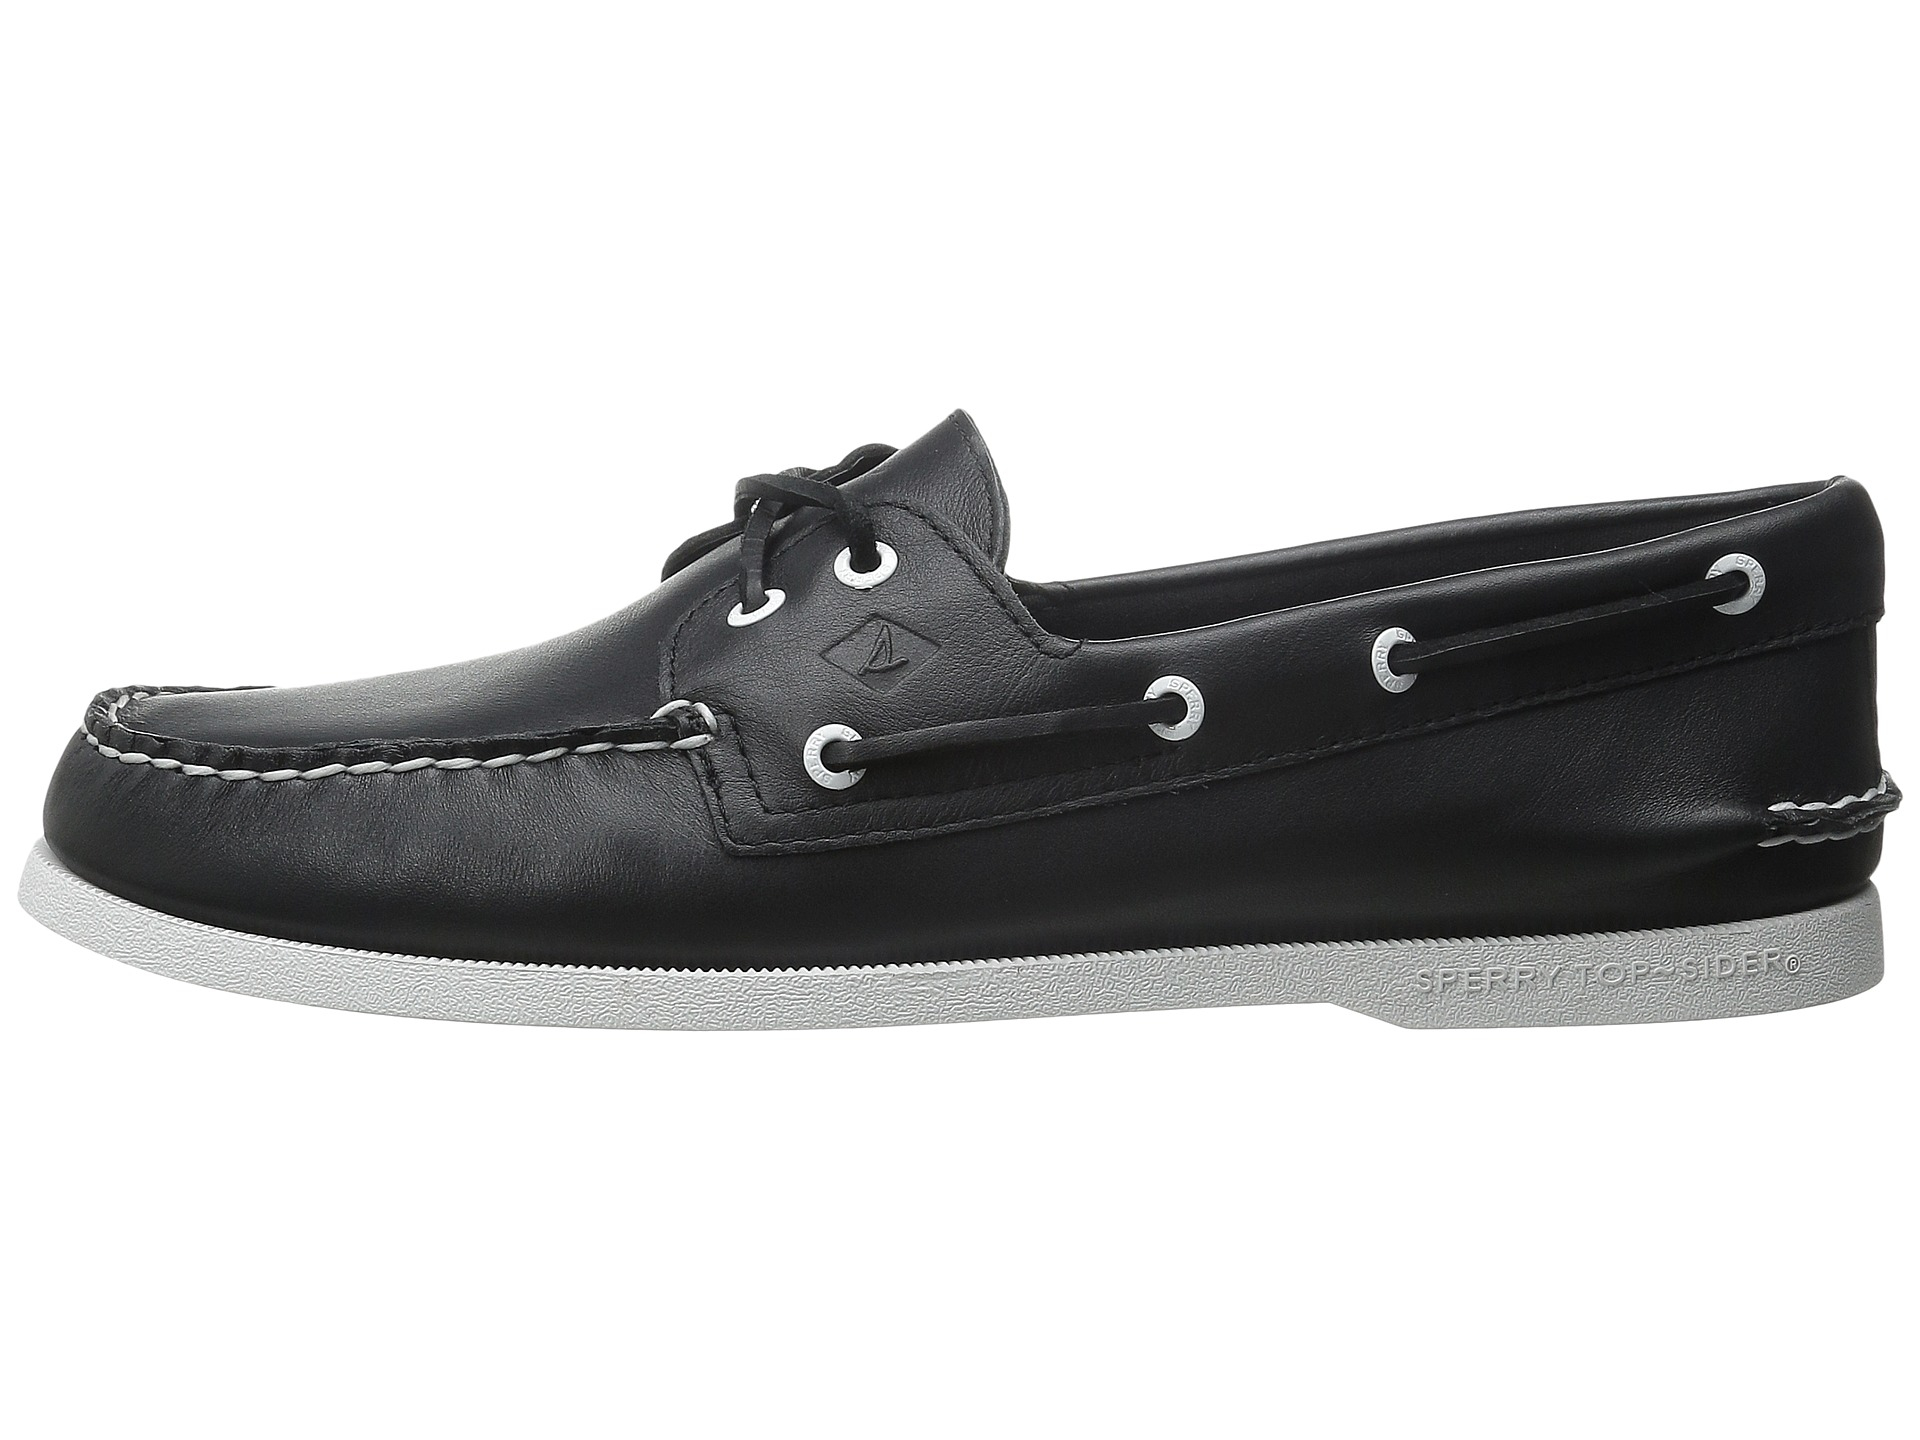 Shoe Laces For Sperry Top Sider